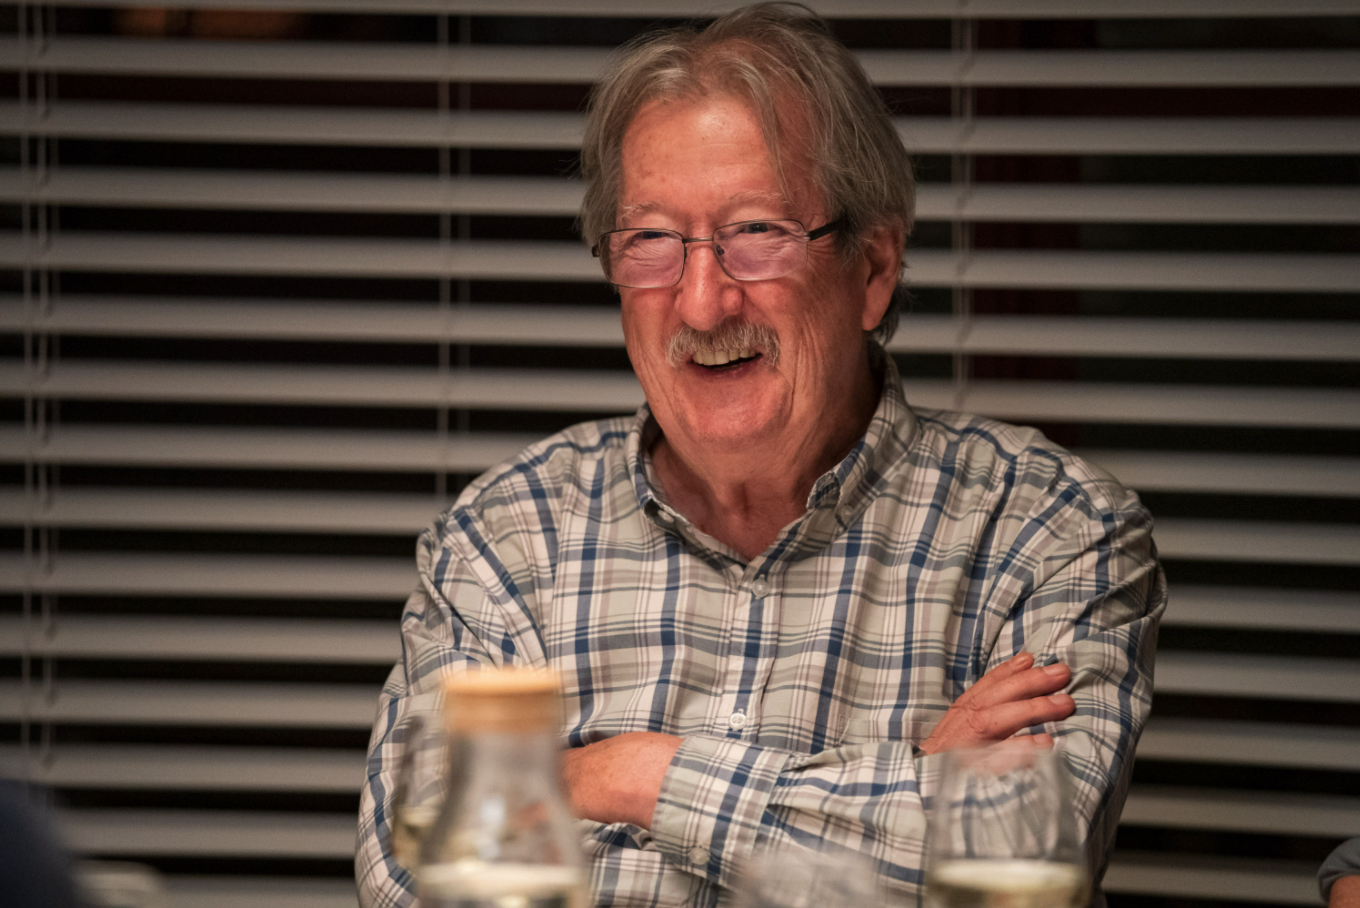 Michael Caton laughing while sitting down at a table